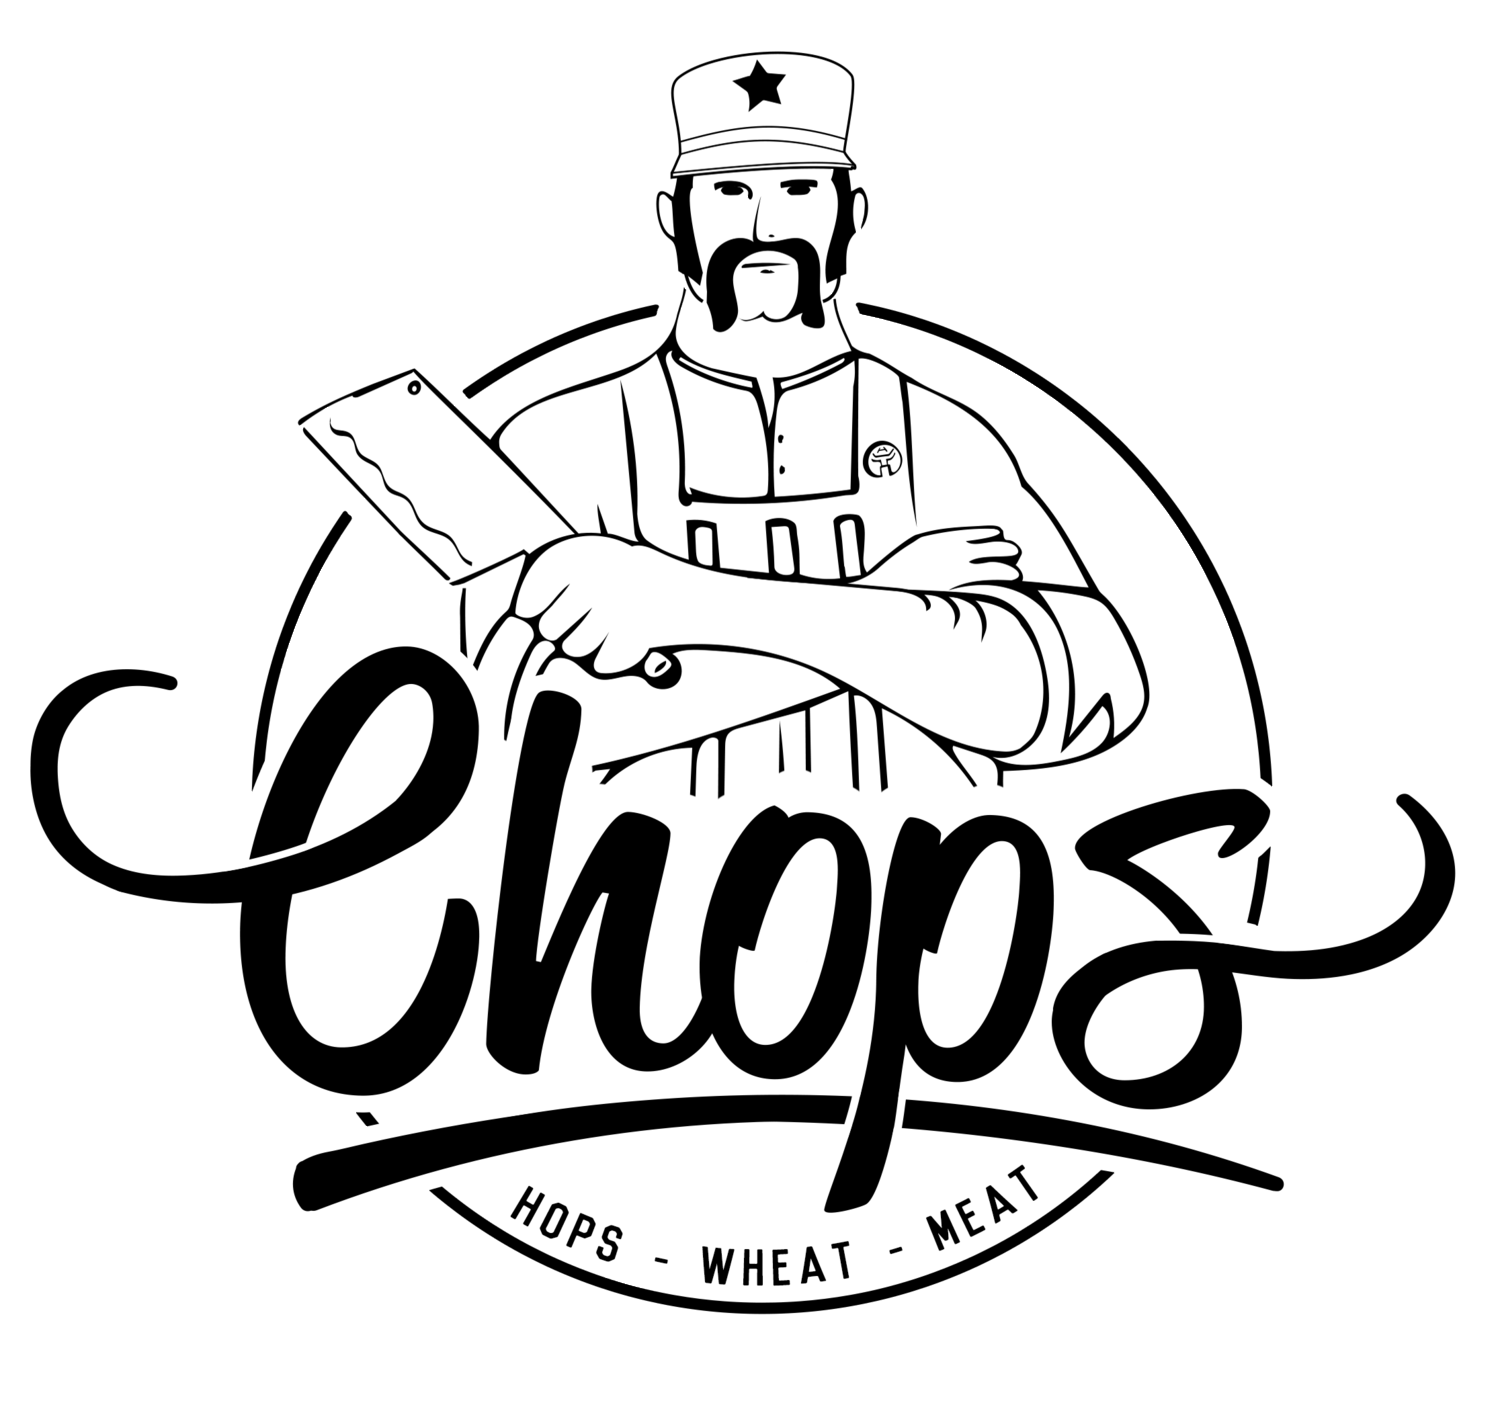 Chops - Burgers and Beers